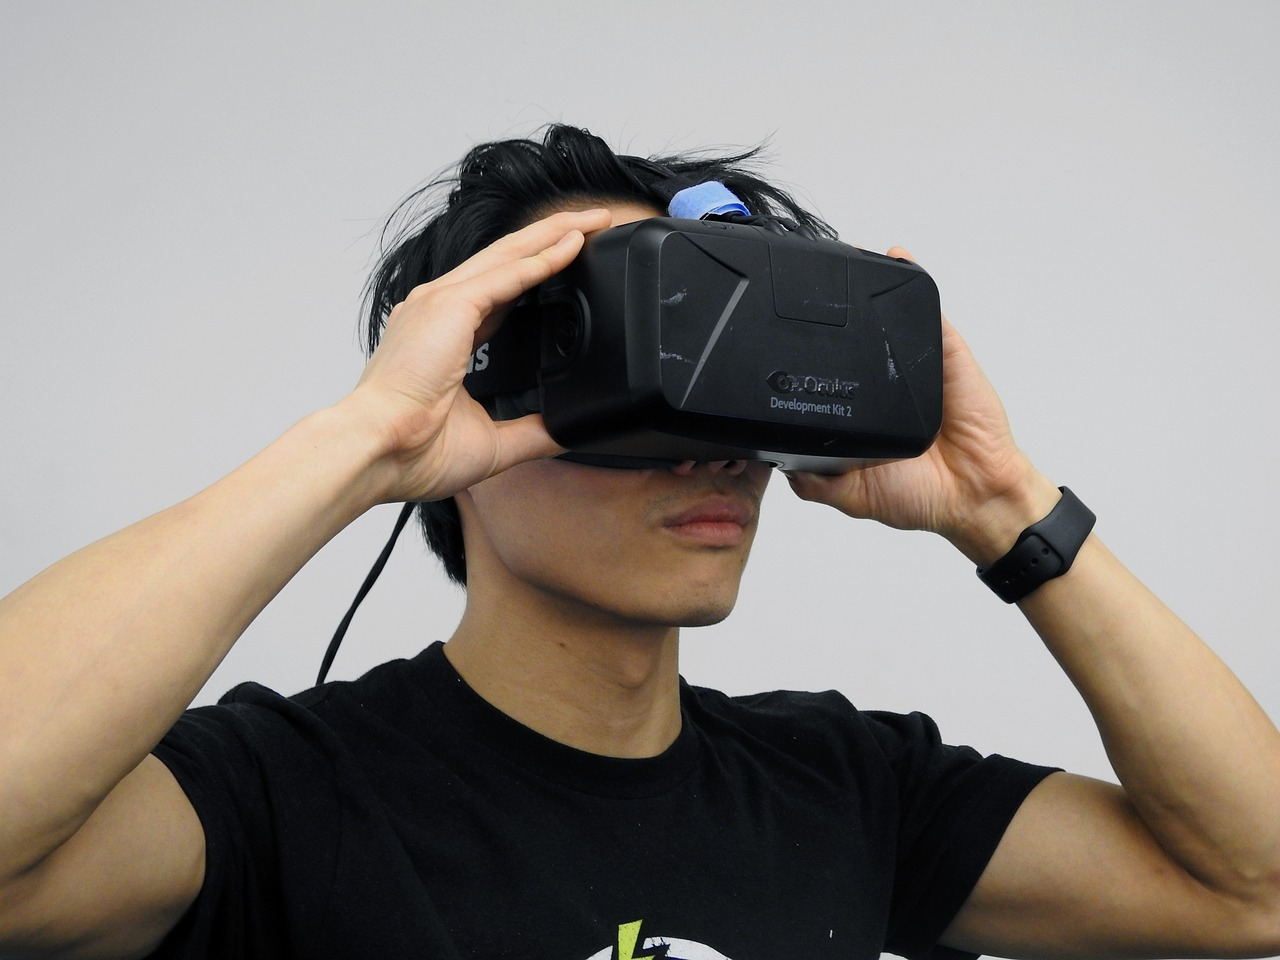 interactie met virtual reality bril